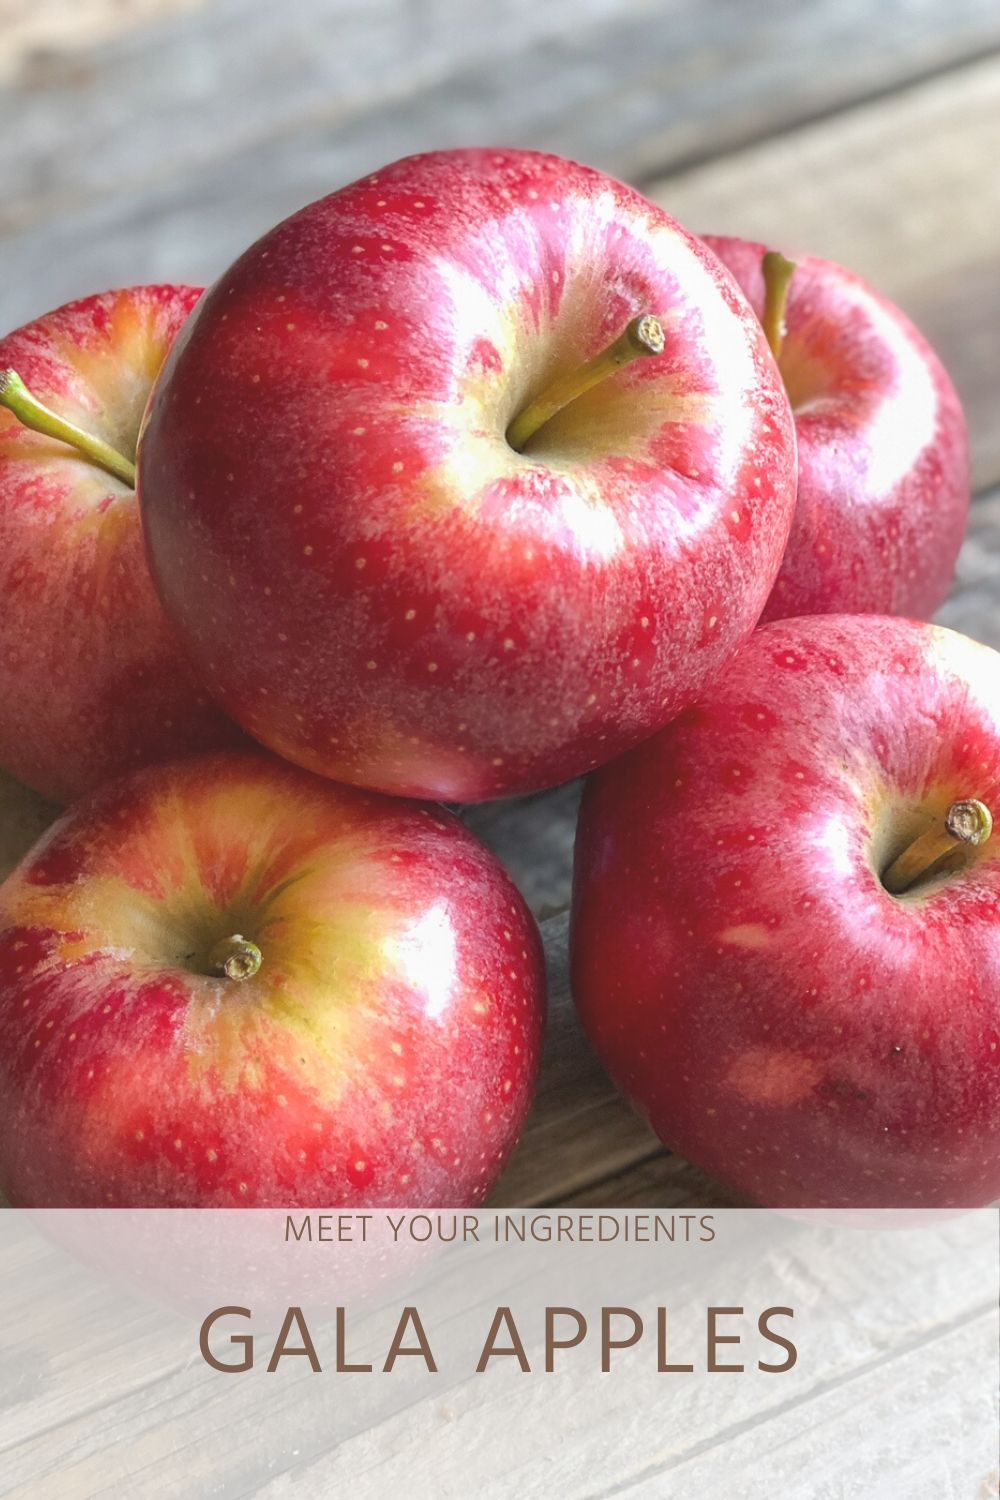 Meet Your Ingredients: Gala Apples